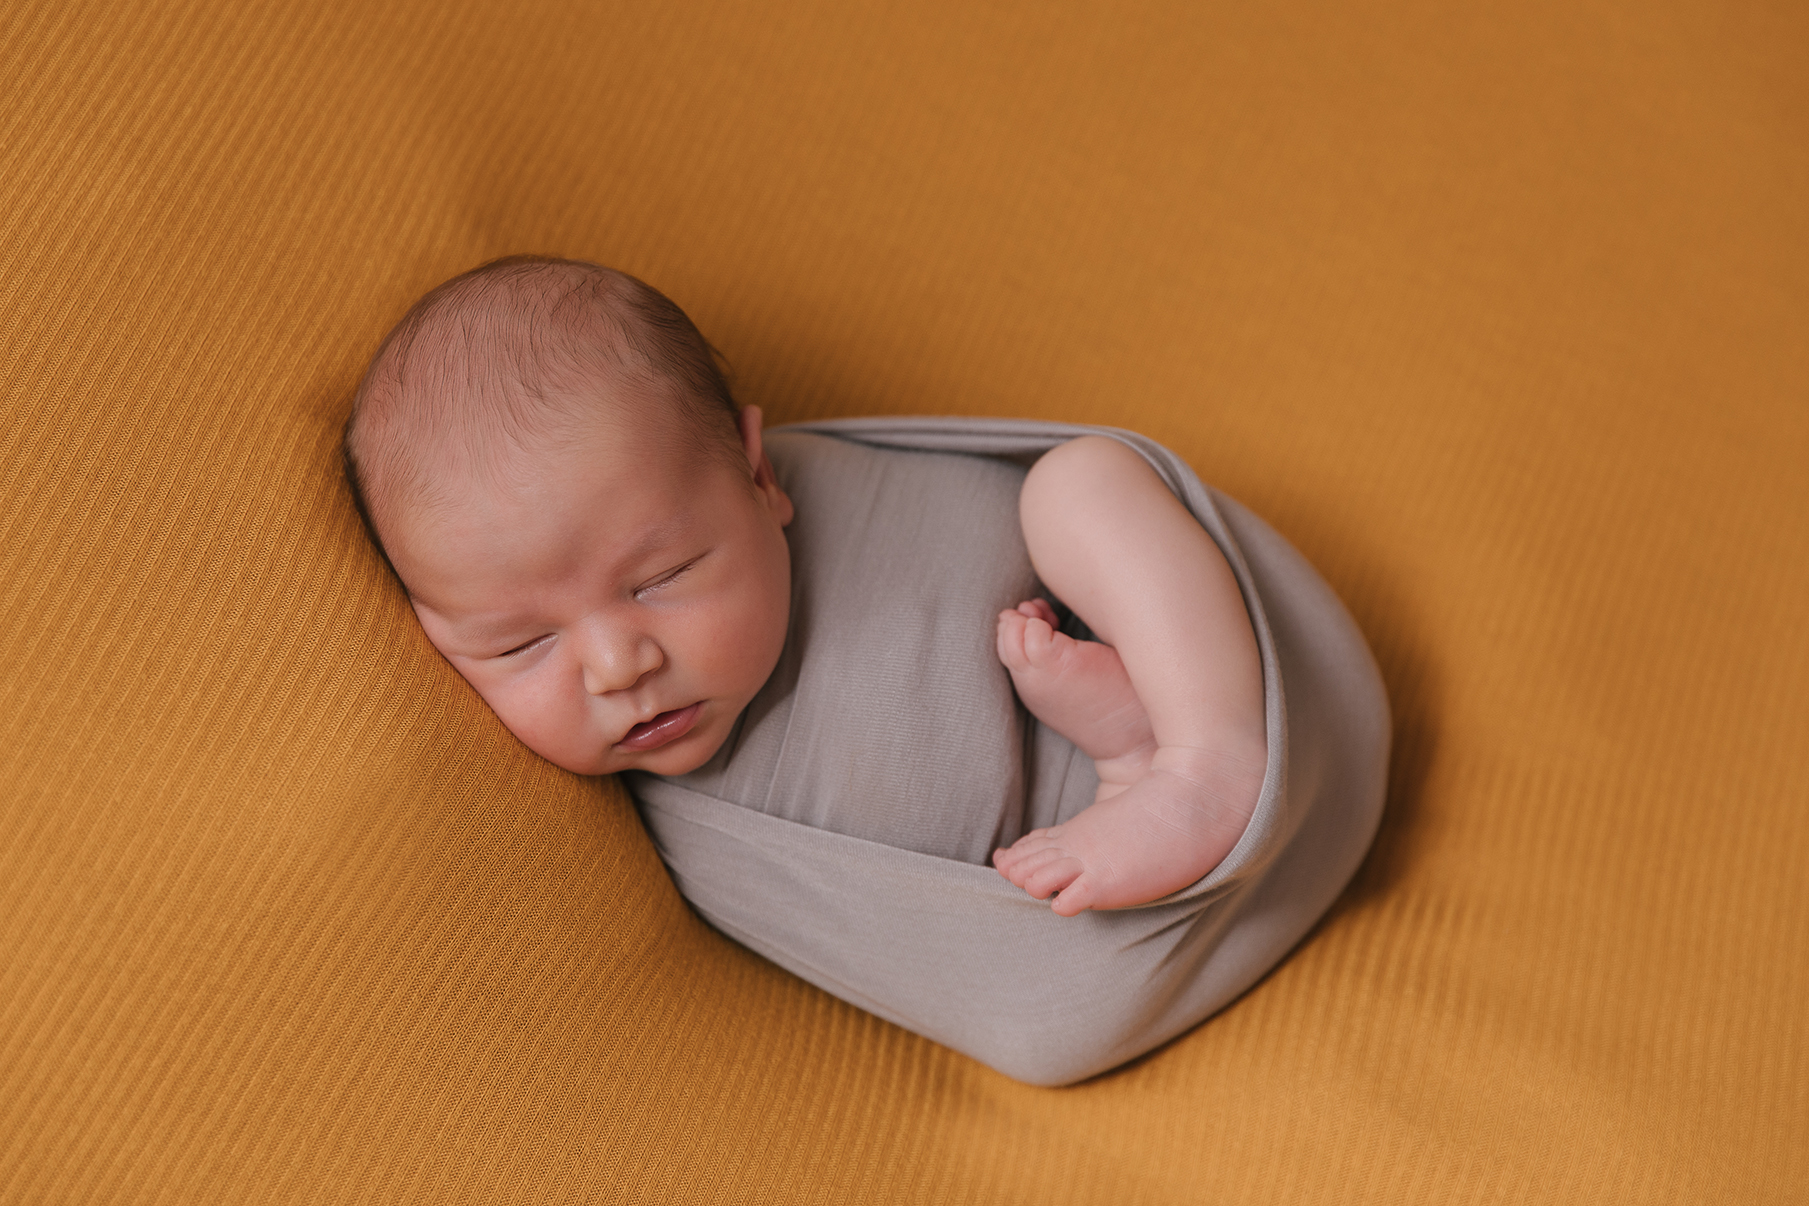 Kinsman_Ohio_Baby_Boy_Taco_Pose_Newborn_photography_by_Christie_Leigh_Photo_in_Cortland_Ohio-022.jpg